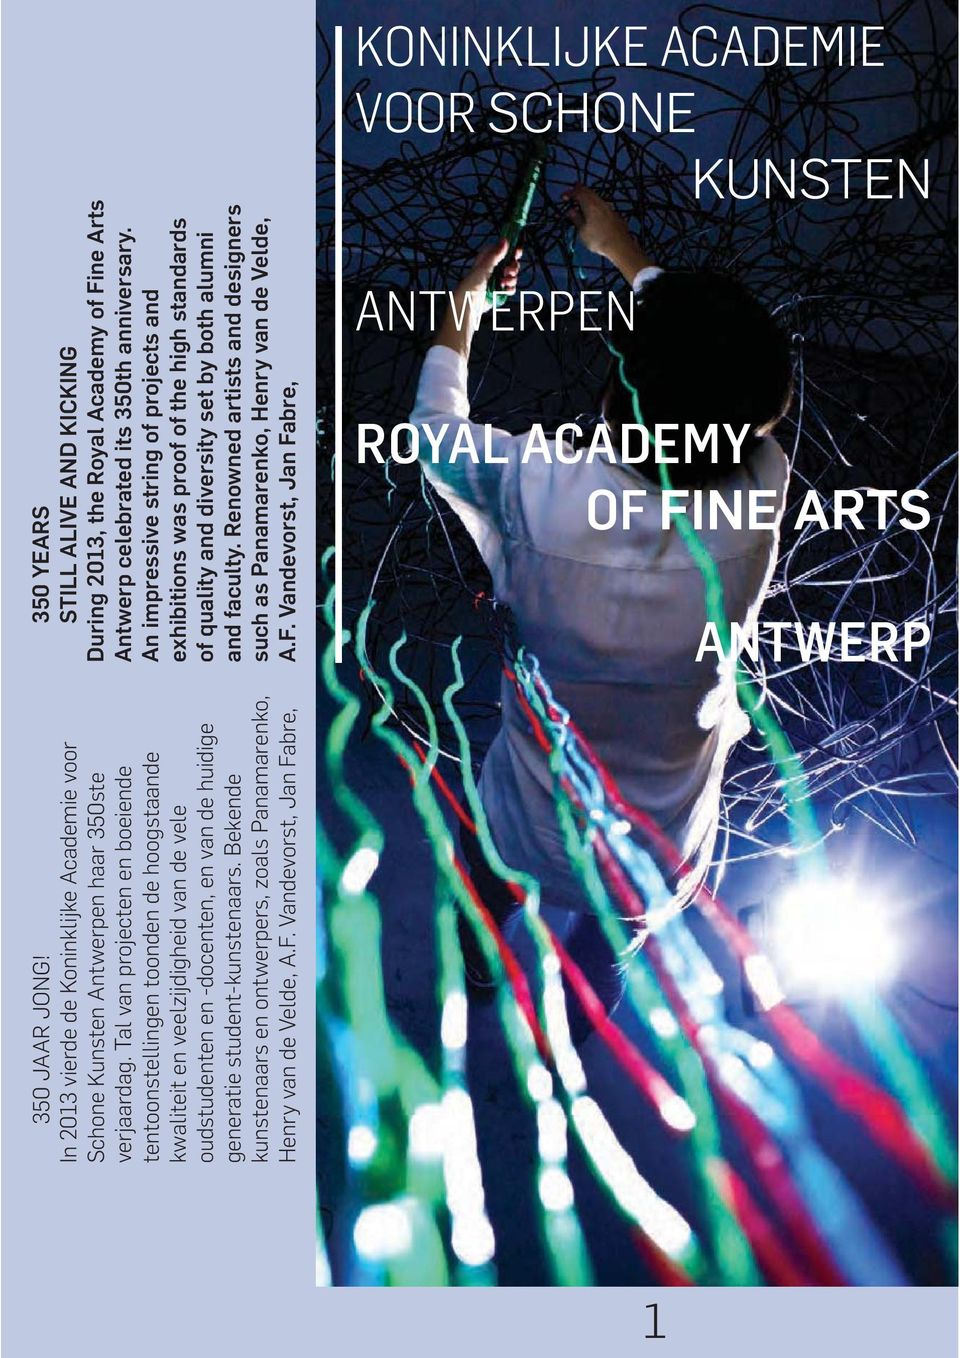 Renowned artists and designers such as Panamarenko, Henry van de Velde, A.F. Vandevorst, Jan Fabre, KONINKLIJKE ACADEMIE VOOR SCHONE KUNSTEN ANTWERPEN ROYAL ACADEMY OF FINE ARTS ANTWERP 350 JAAR JONG!